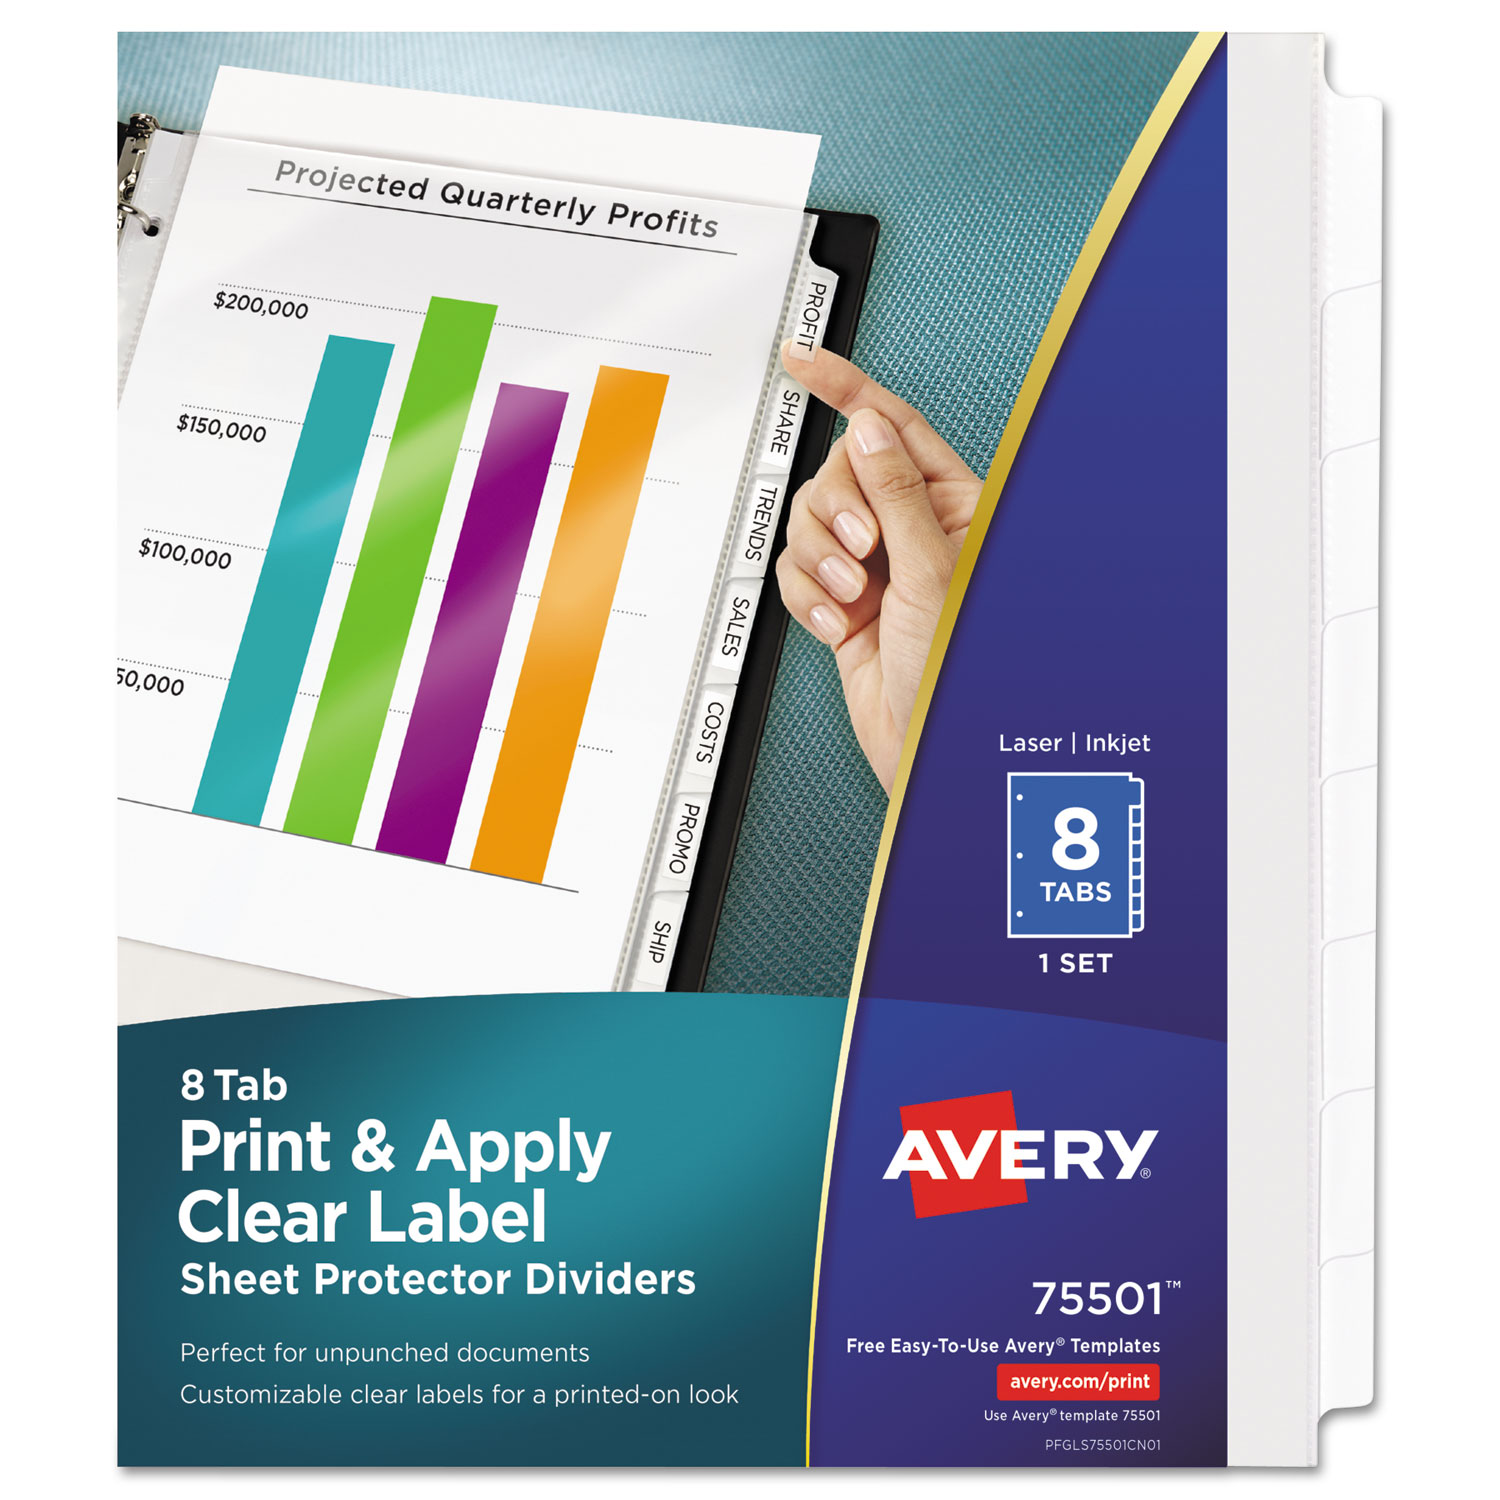 Index Maker Print Apply Clear Label Sheet Protector Dividers By